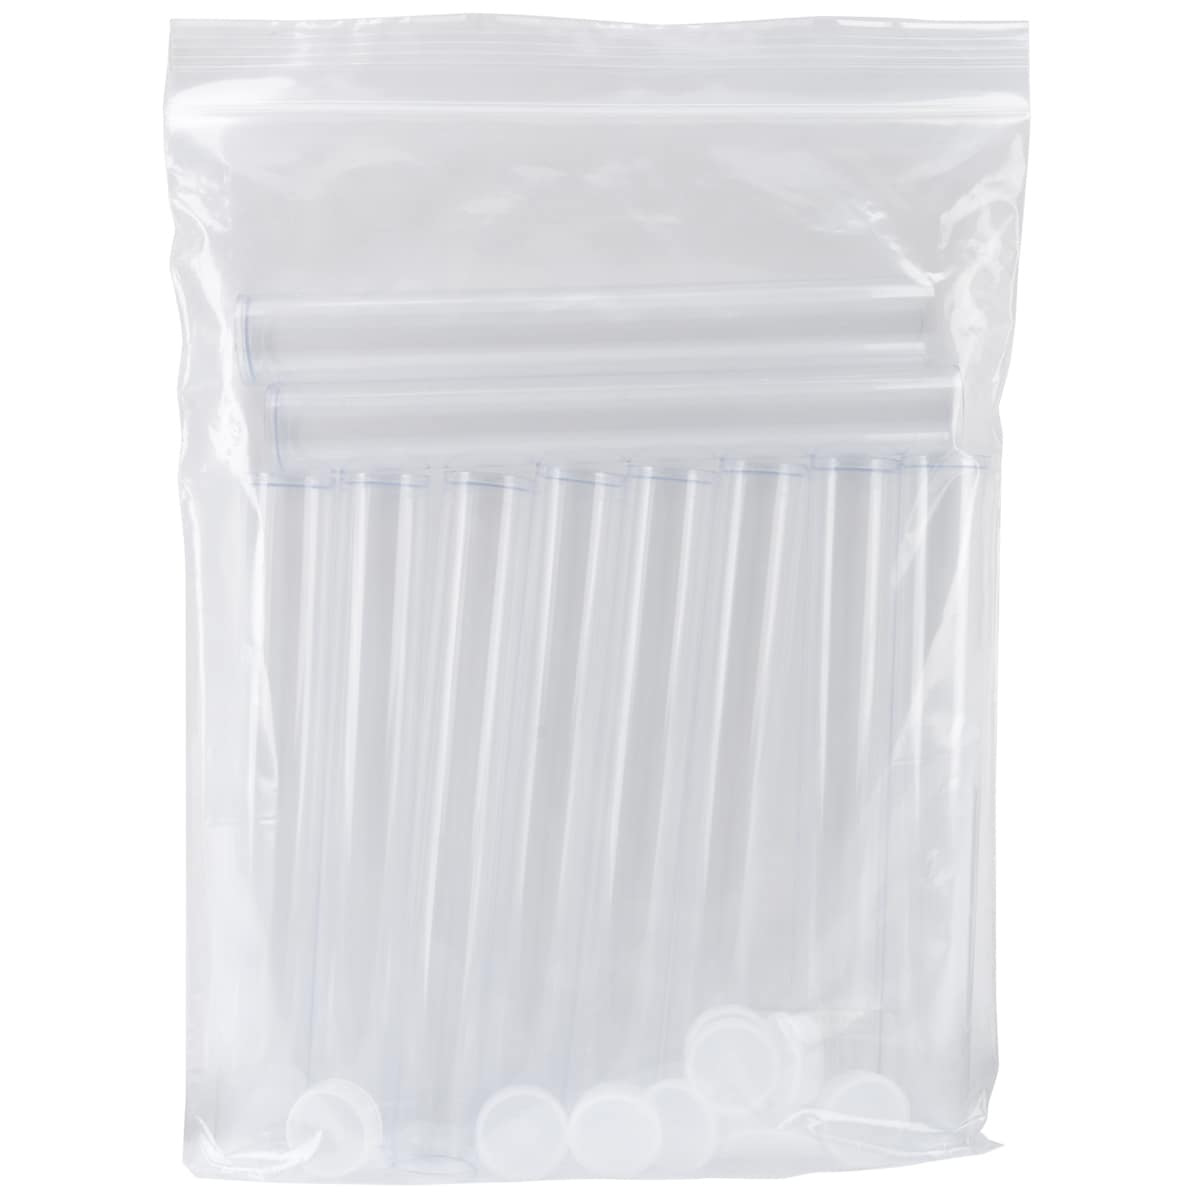 http://www.overstock.com/Crafts-Sewing/Clear-Tall-Round-Craft-Tube-8-10-Pkg/6740114/product.html?searchidx=1